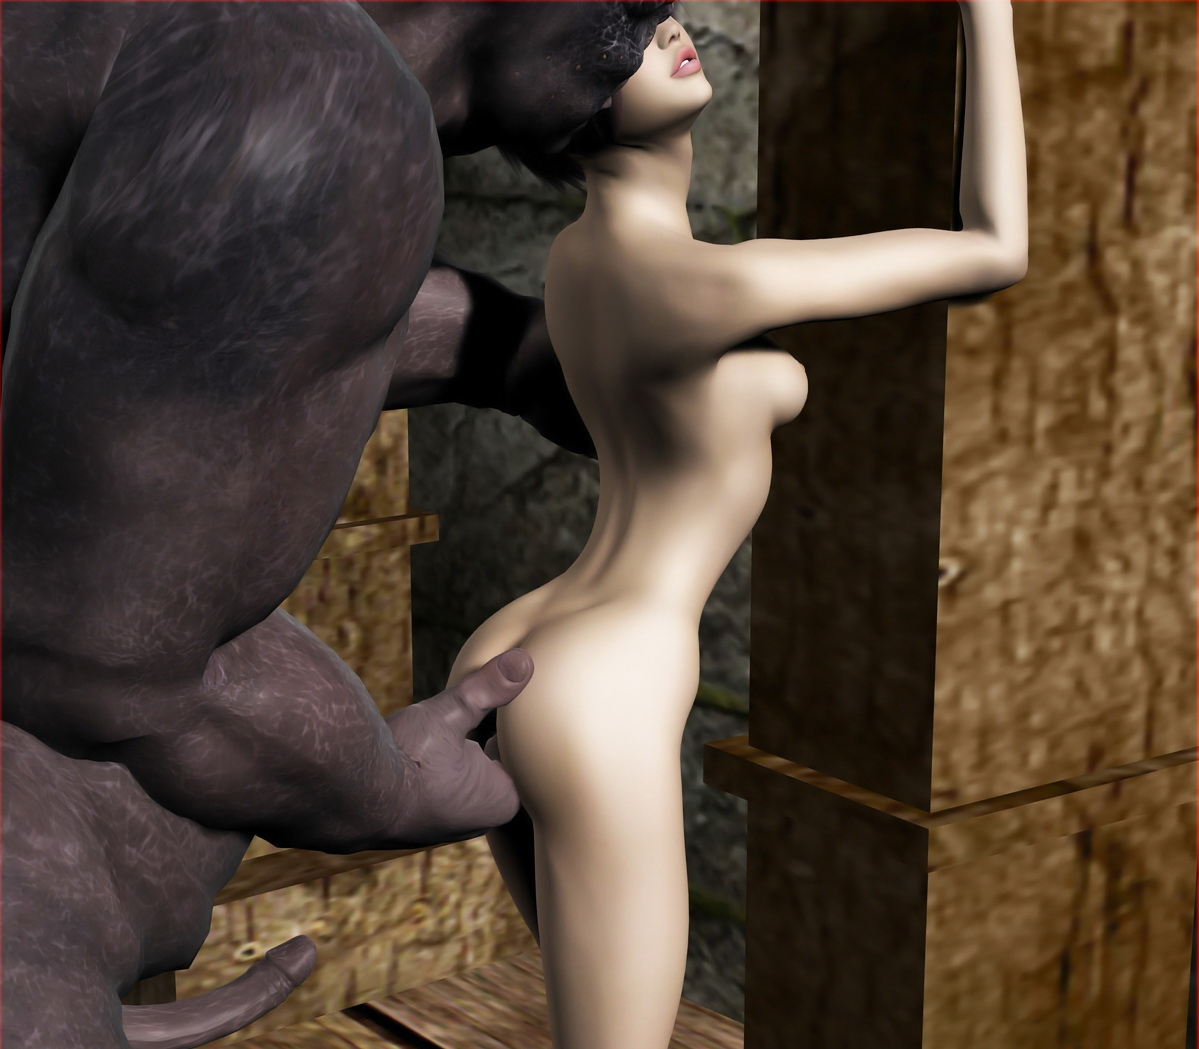 Monster sex 3d pigs and girks xxx photo